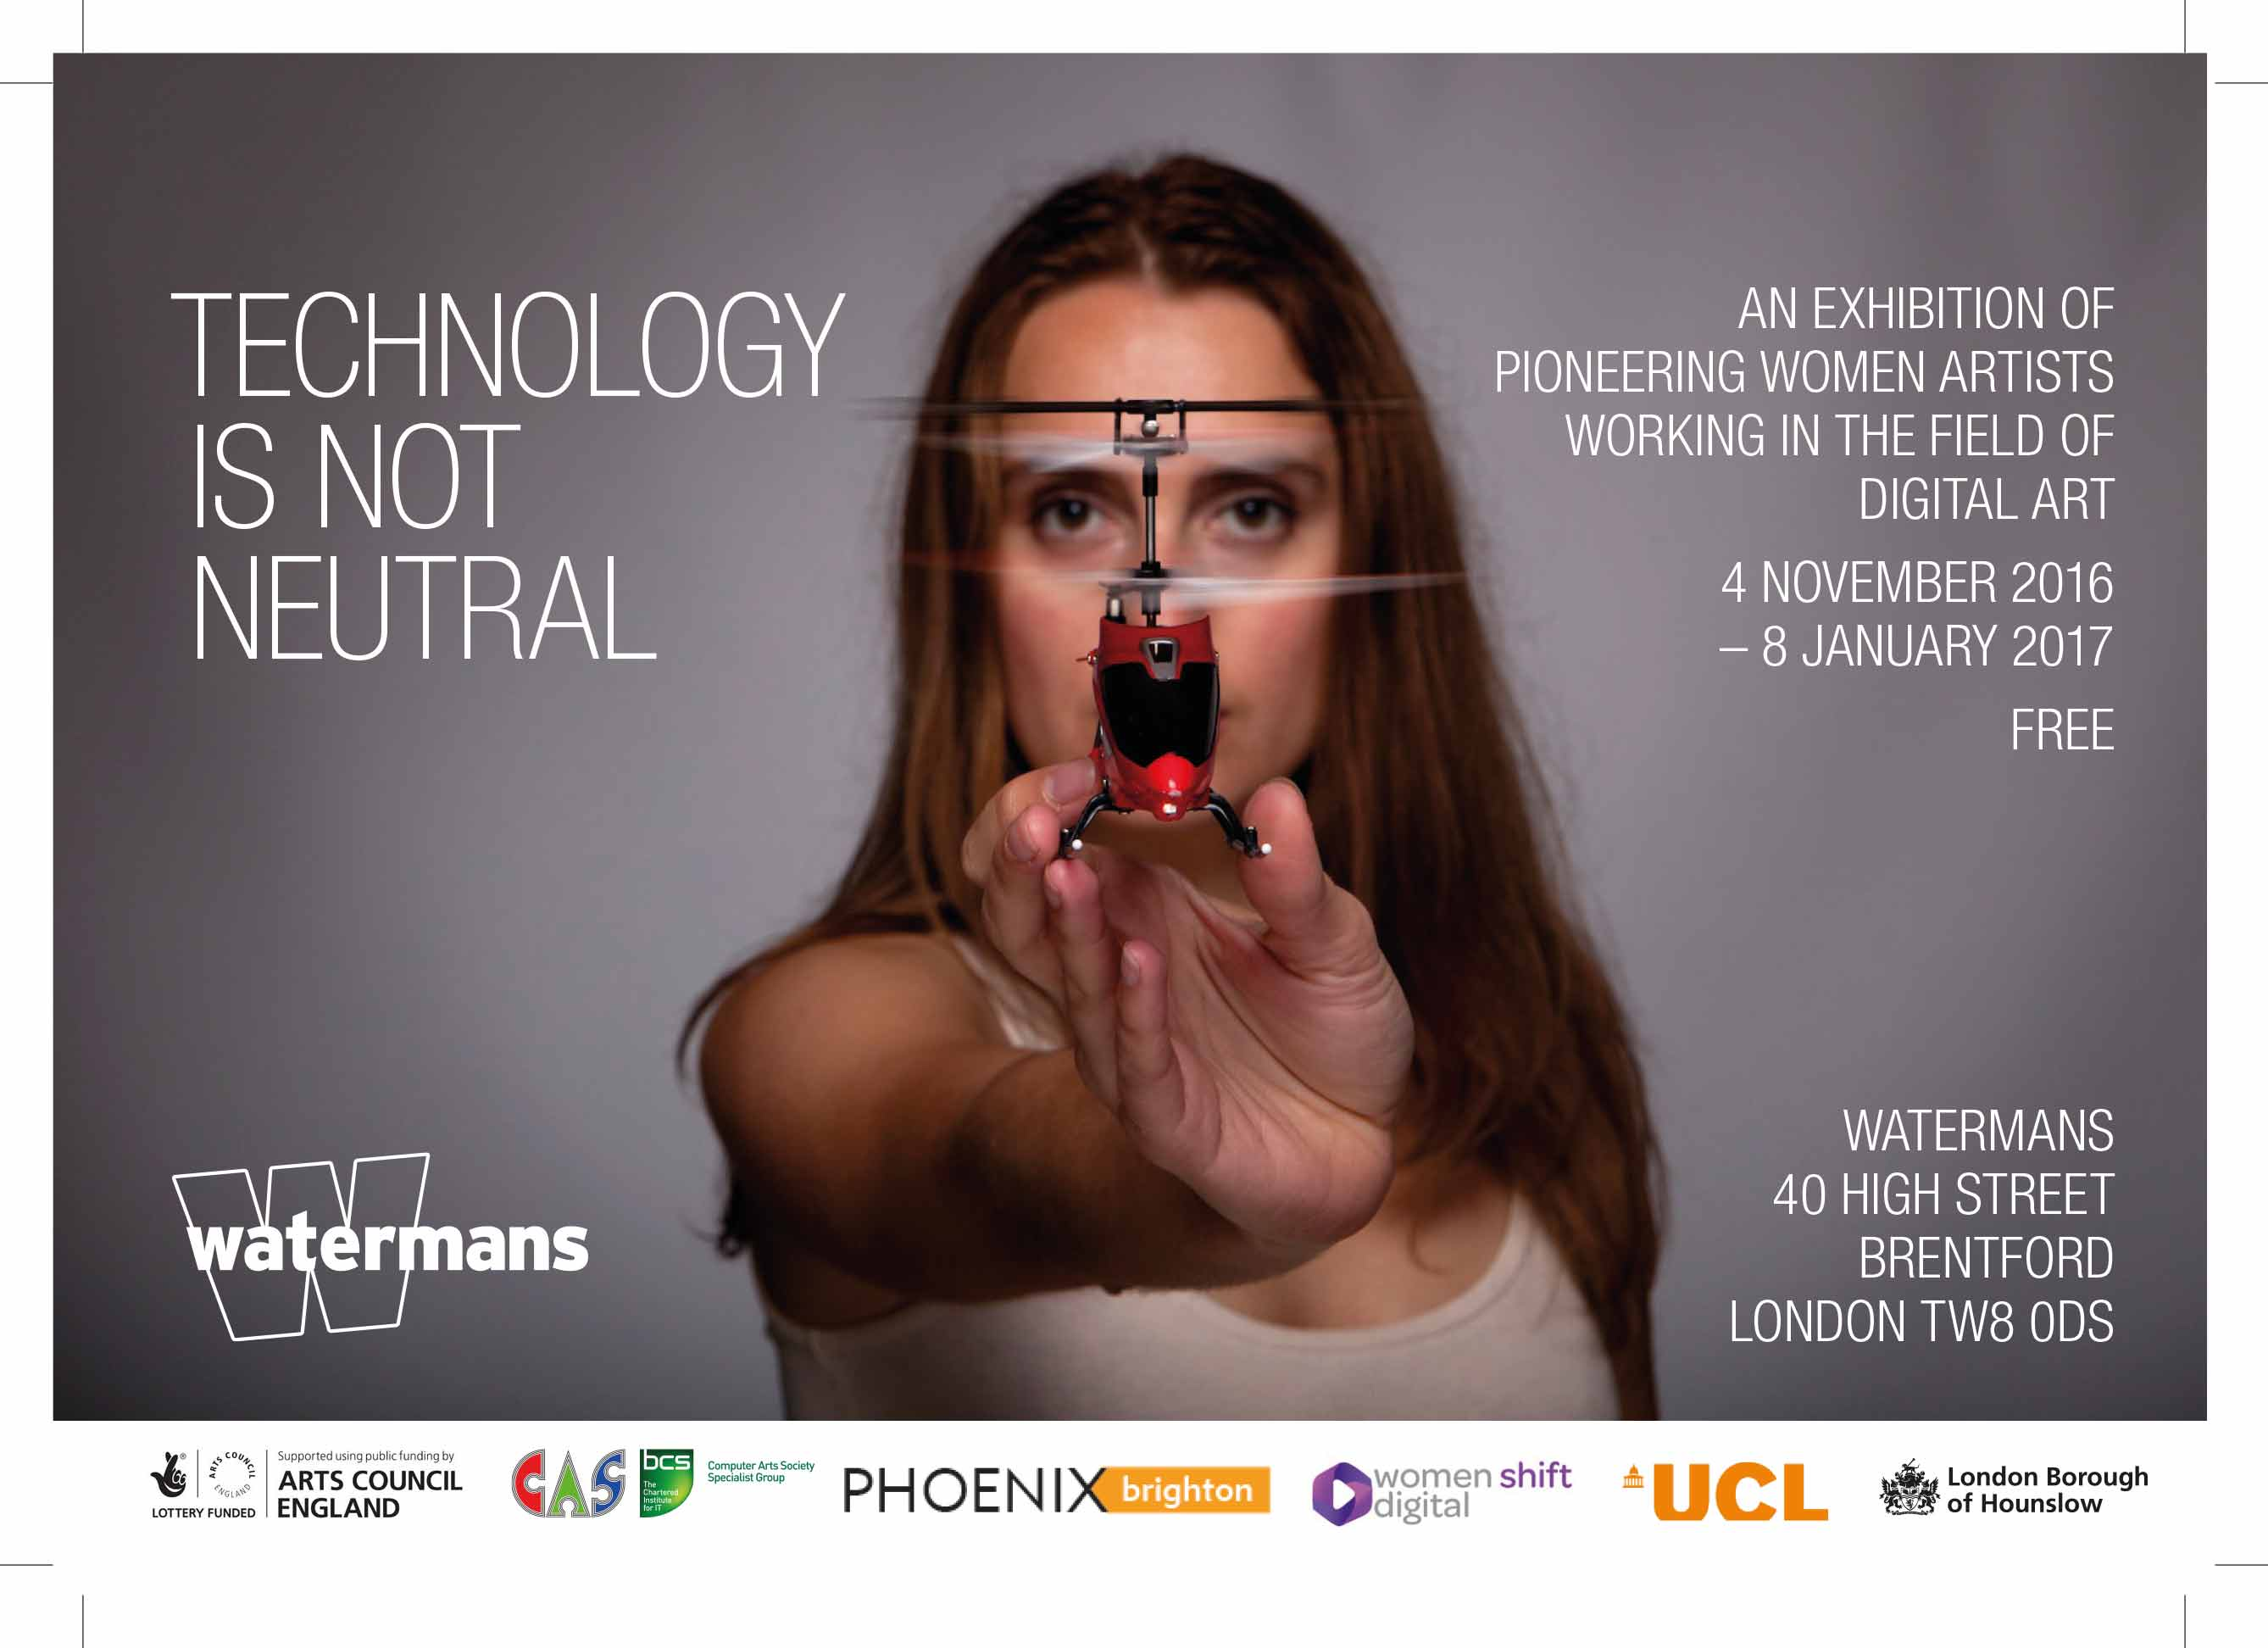 Technology-is-not-neutral-flyer-Watermans-print-1